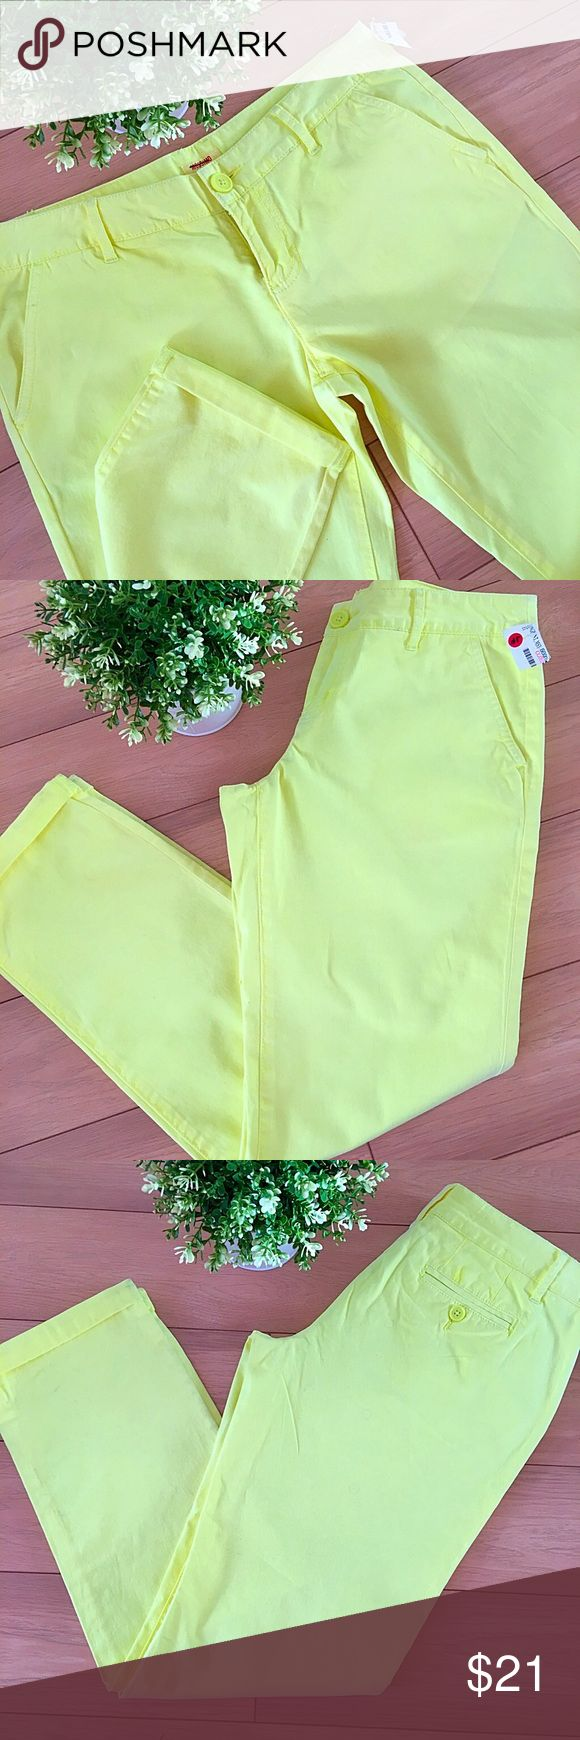 """🍂Neon Yellow Pants!🍂 🍂 So pretty for Fall! 🍂   Neon Yellow Straight Pants!  - Low waist  - Size 7  - 98% cotton, 2% spandex  - Waist 32""""  - Inseam 29""""      📬 THE SAME DAY SHIPPING 📬  💰15% OFF ON BUNDLES 💰    📱FOLLOW ME ON INSTAGRAM 📱  @Showroom.Marusya    🚫 SORRY, NO TRADES 🚫  🚫 NO PAYPAL 🚫 Mossimo Supply Co Pants Ankle & Cropped"""